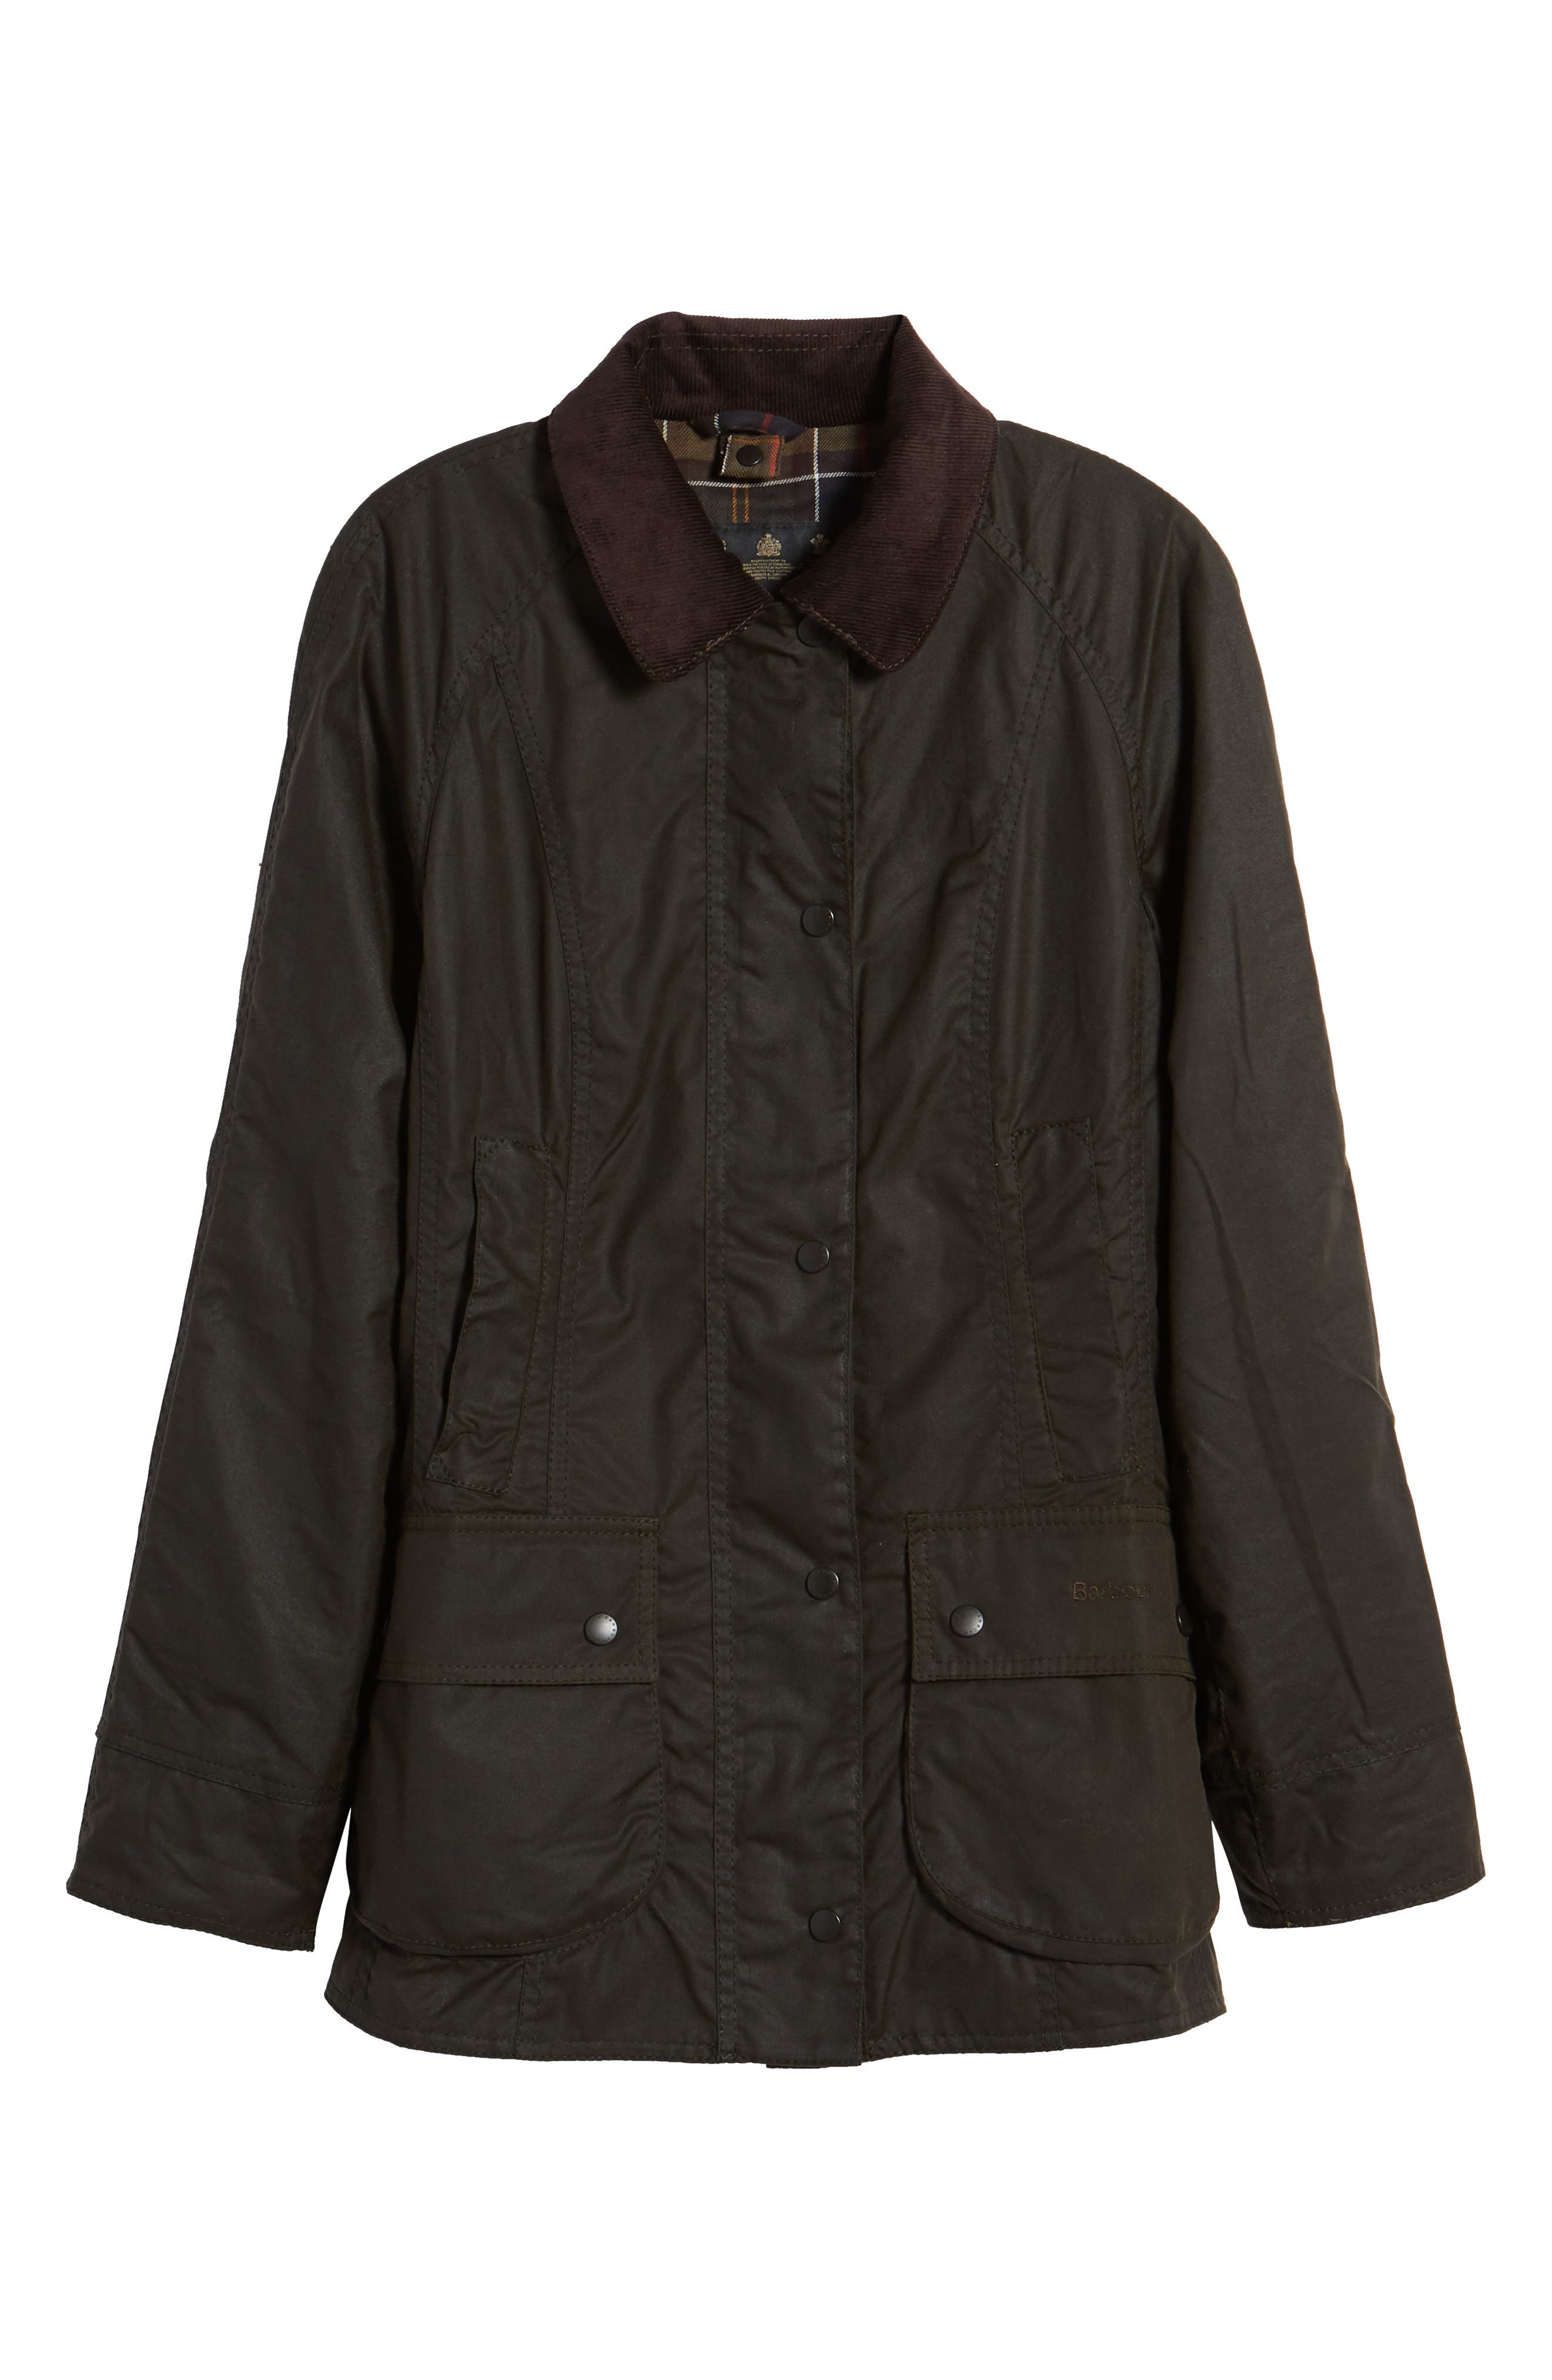 Beadnell Waxed Cotton Jacket,                             Alternate thumbnail 6, color,                             OLIVE